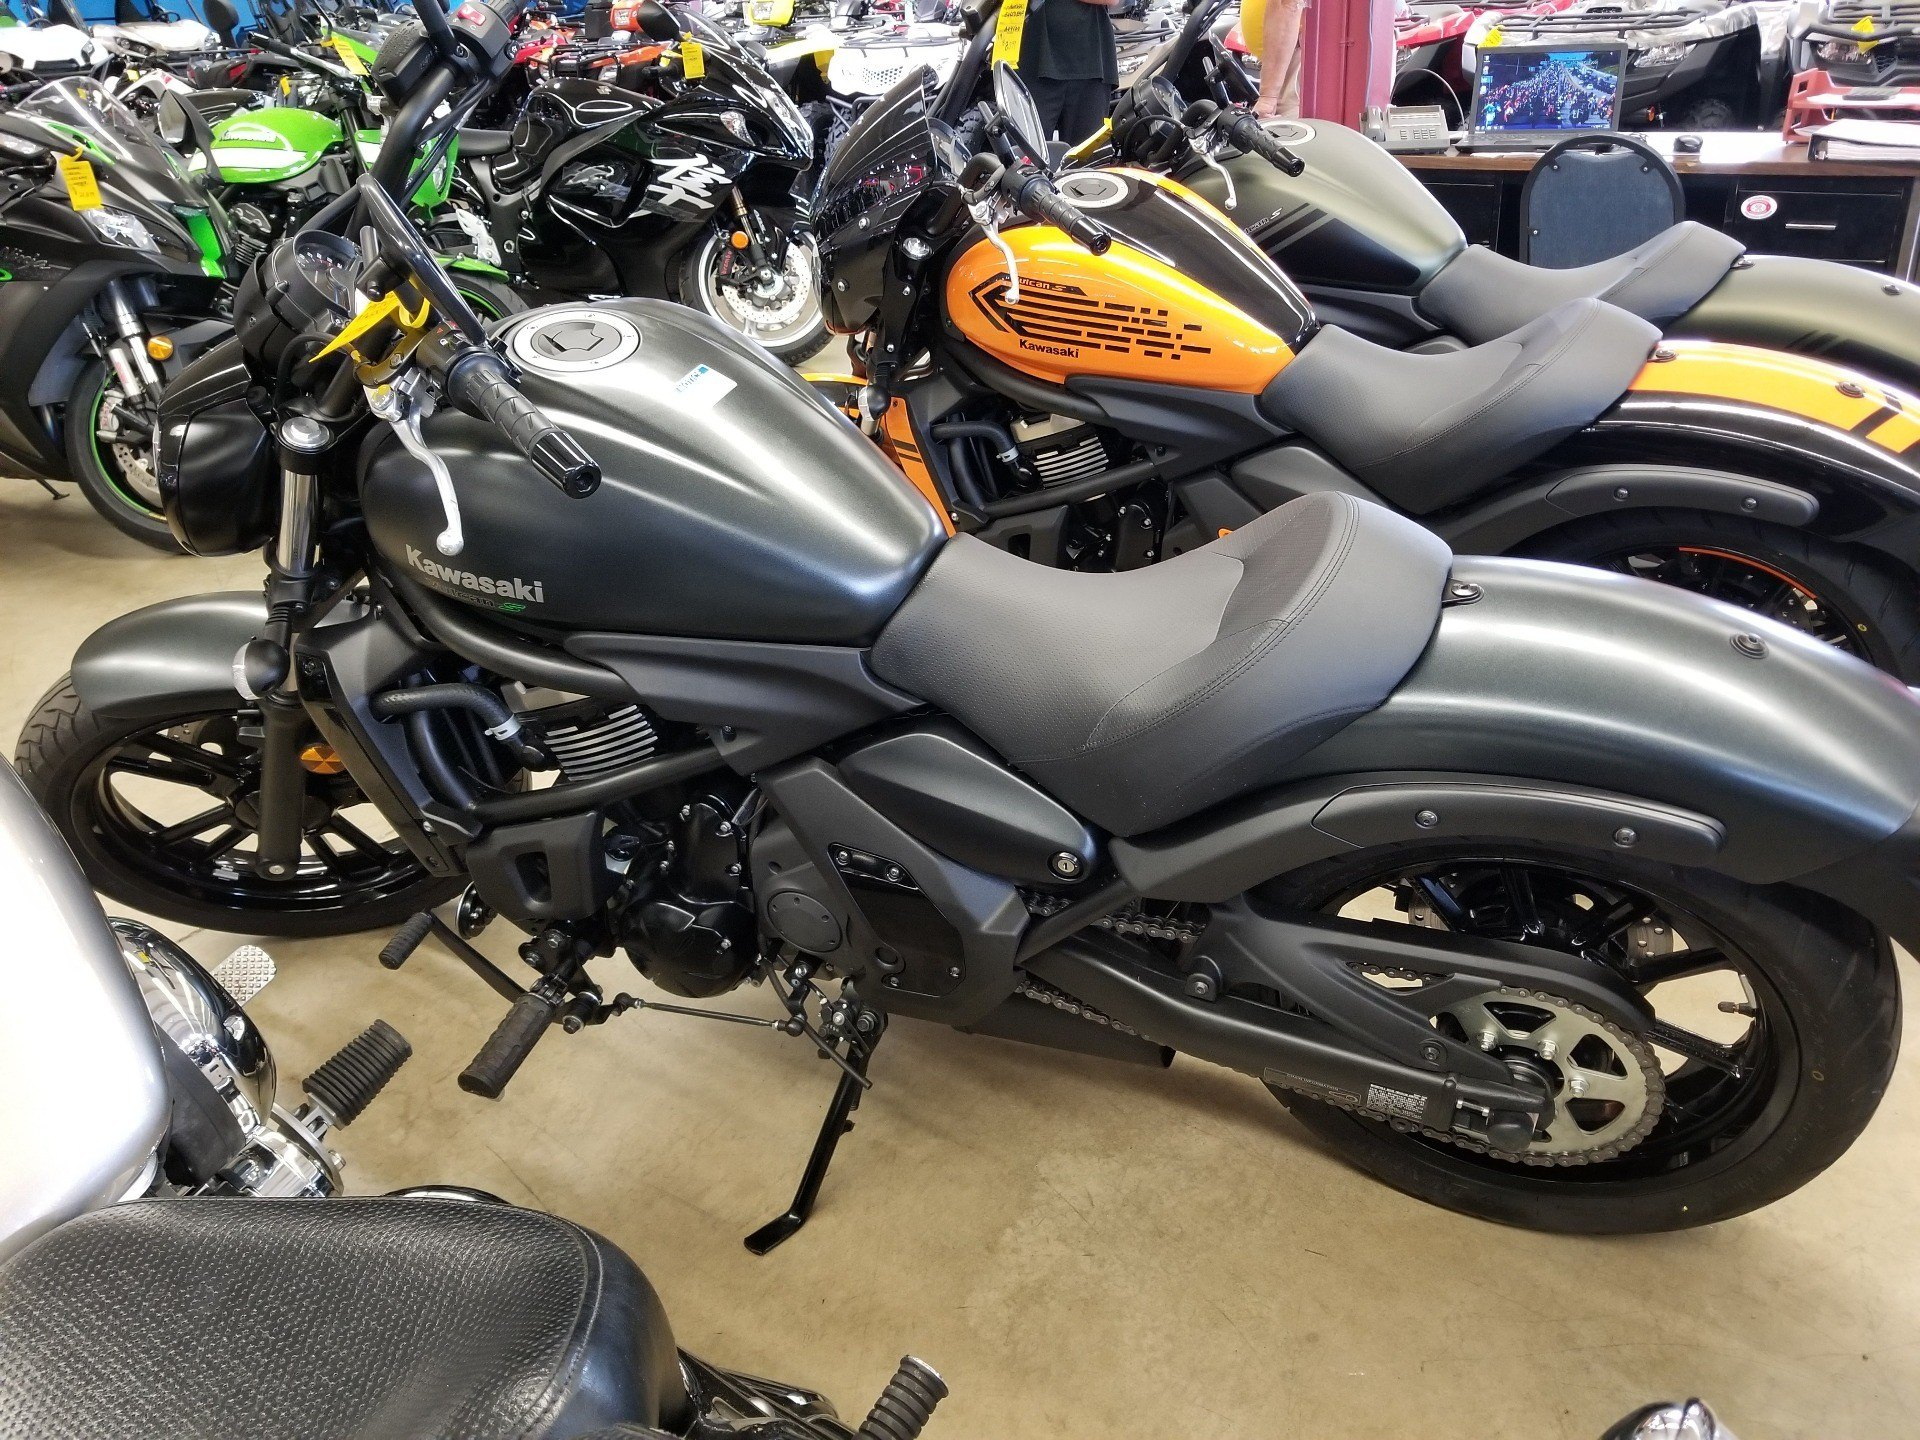 2017 Kawasaki Vulcan S in Canton, Ohio - Photo 3